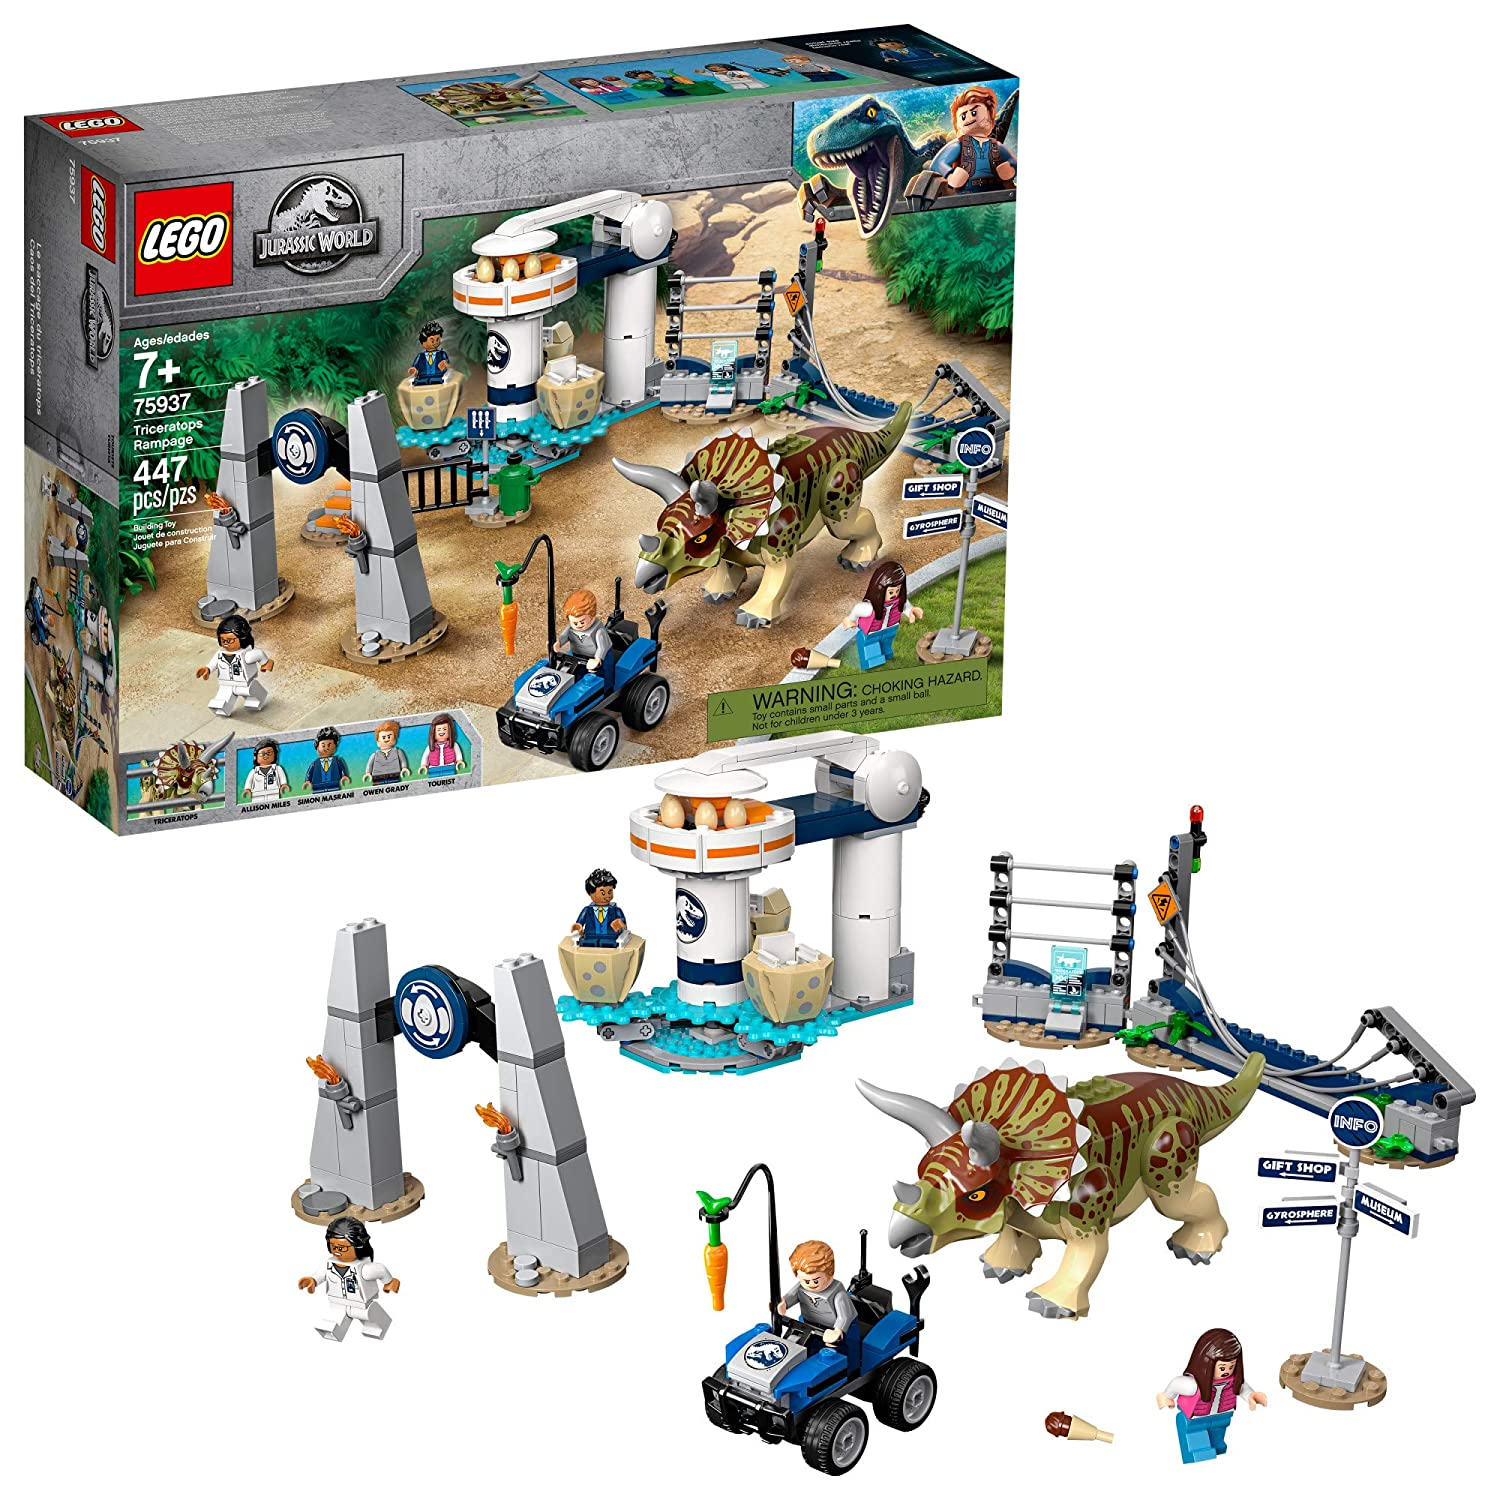 Top 8 Best Lego Dinosaurs Set Reviews in 2020 8